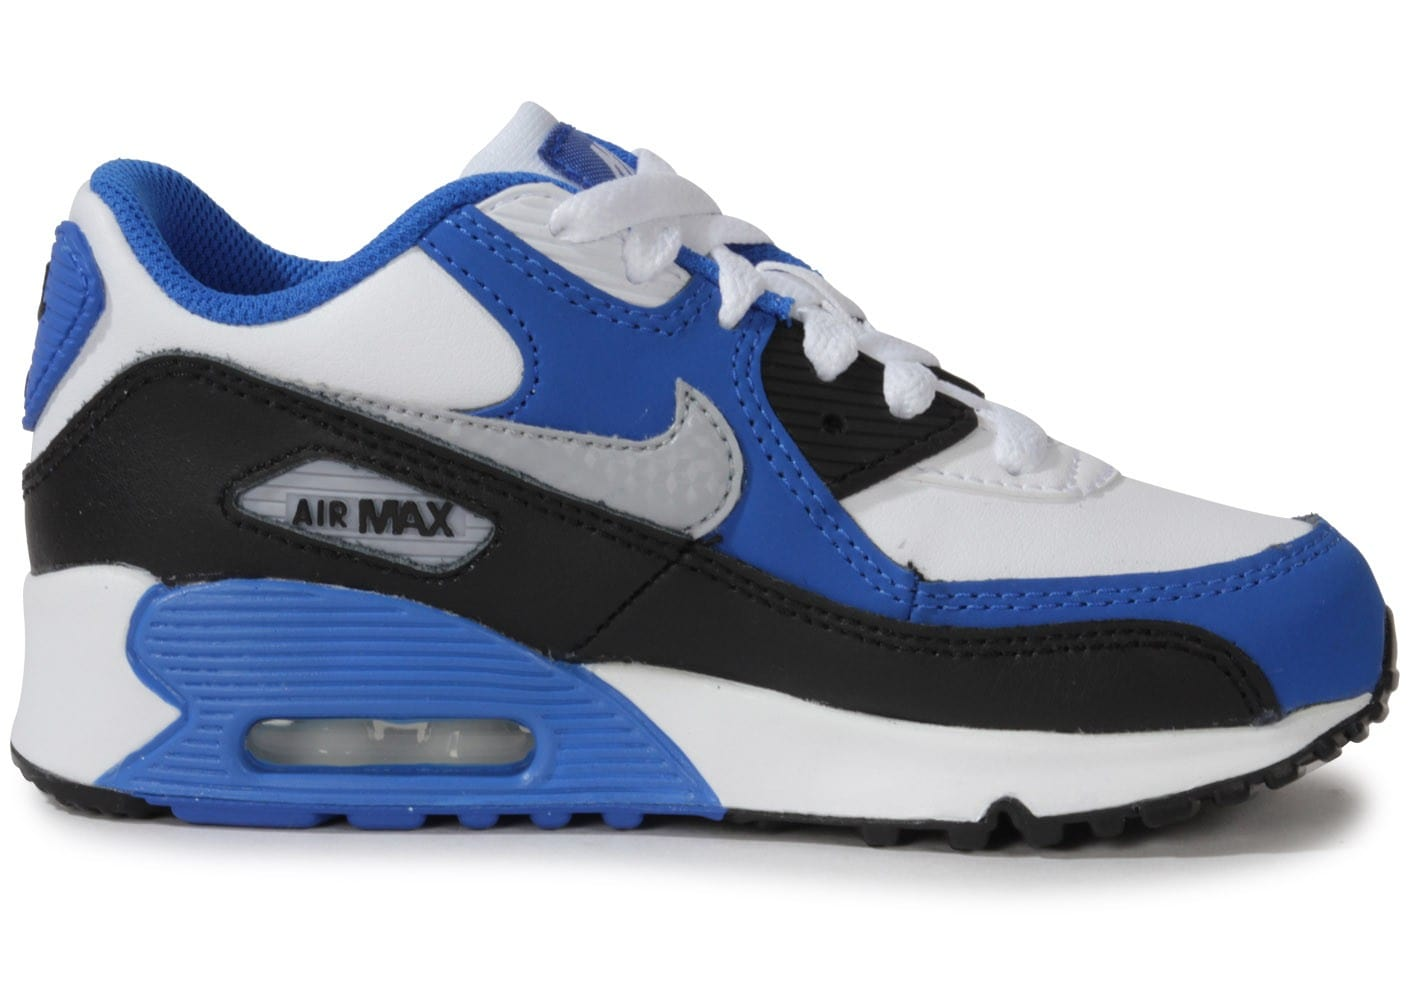 nike air max 90 enfant blanche et bleue chaussures chaussures chausport. Black Bedroom Furniture Sets. Home Design Ideas